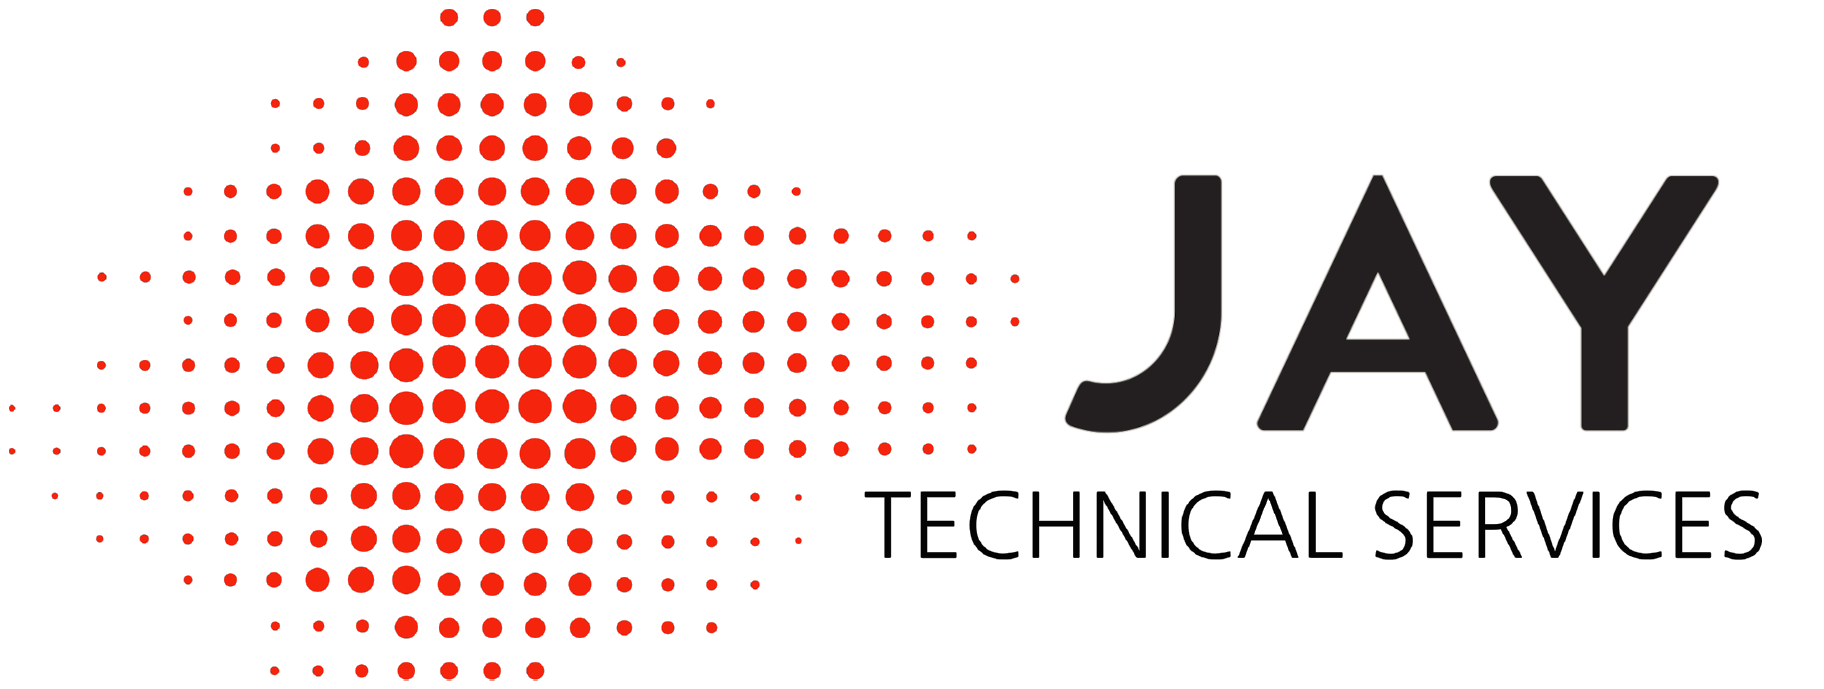 Jay Technical Services